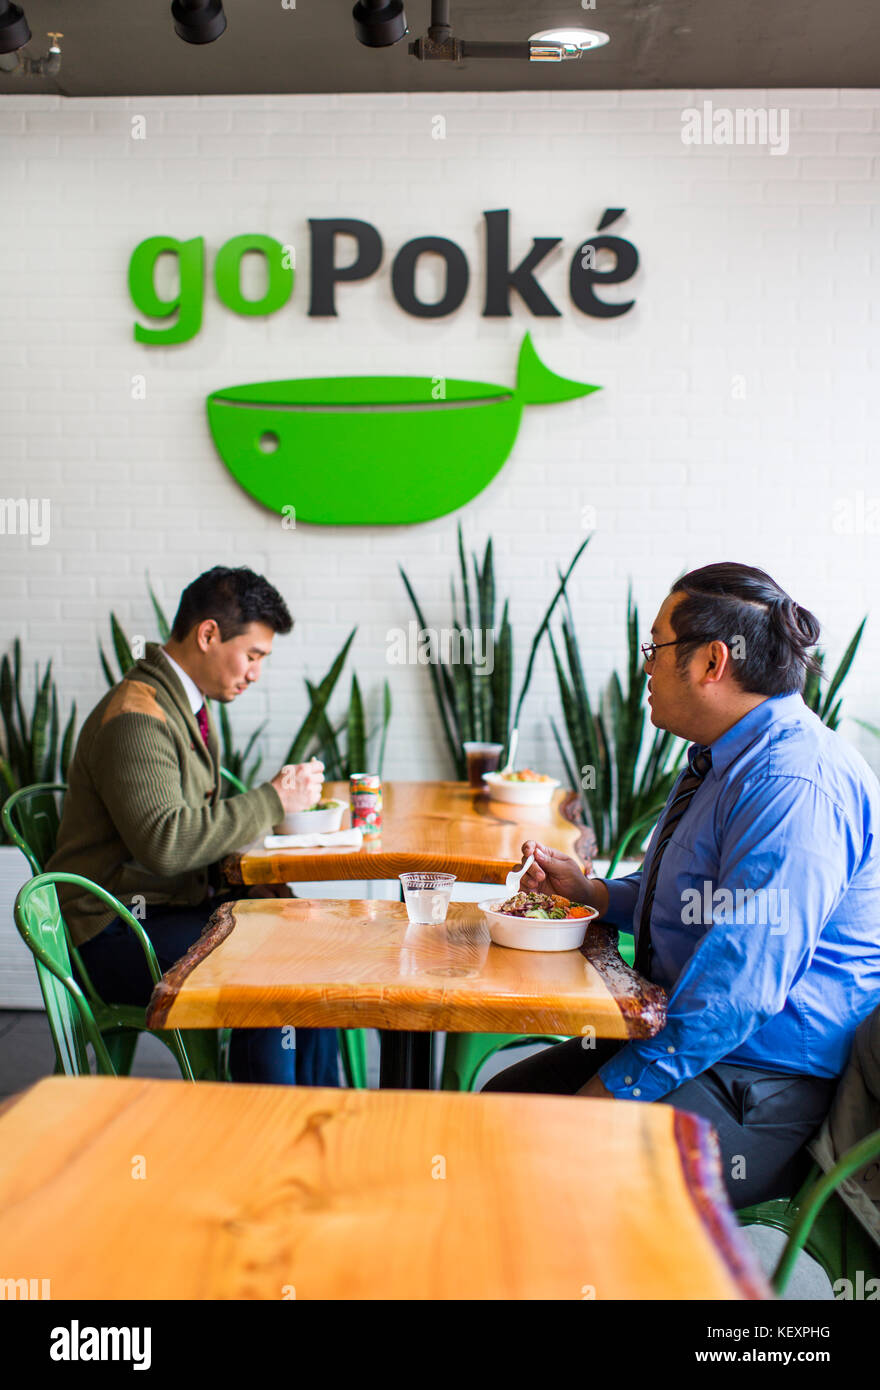 Photograph of two male customers at restaurant eating poke, traditional Hawaiian dish, Seattle, Washington State, - Stock Image